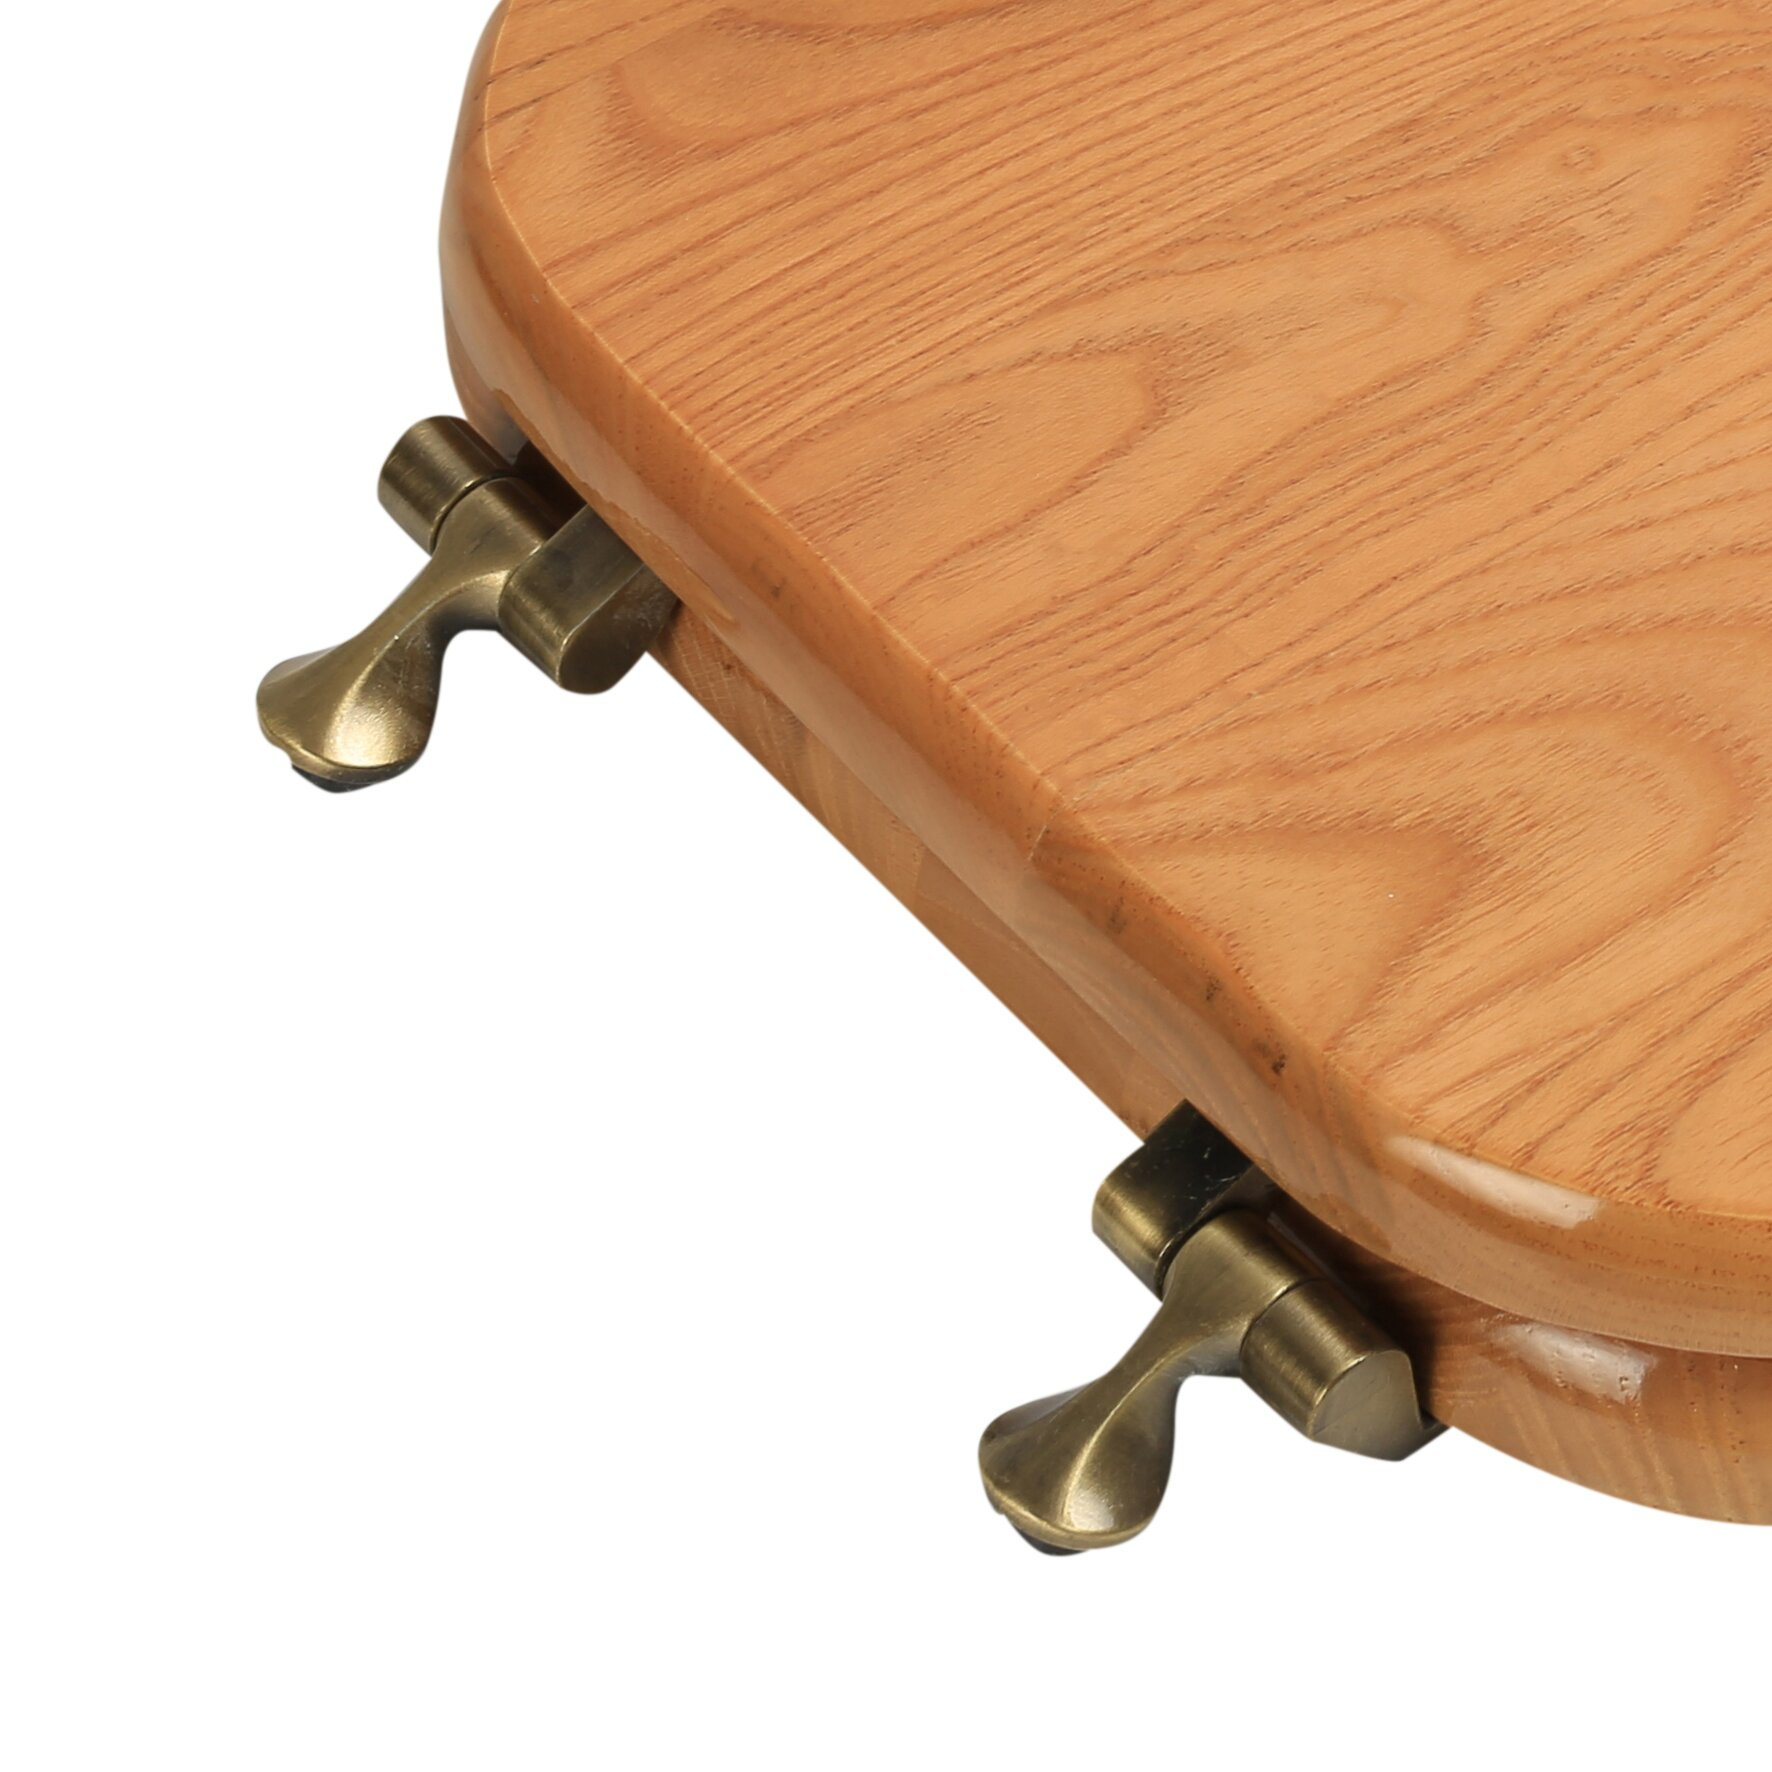 PlumbingTechnologiesLLC Designer Solid Oak Wood Elongated Toilet - Oak toilet seat soft close